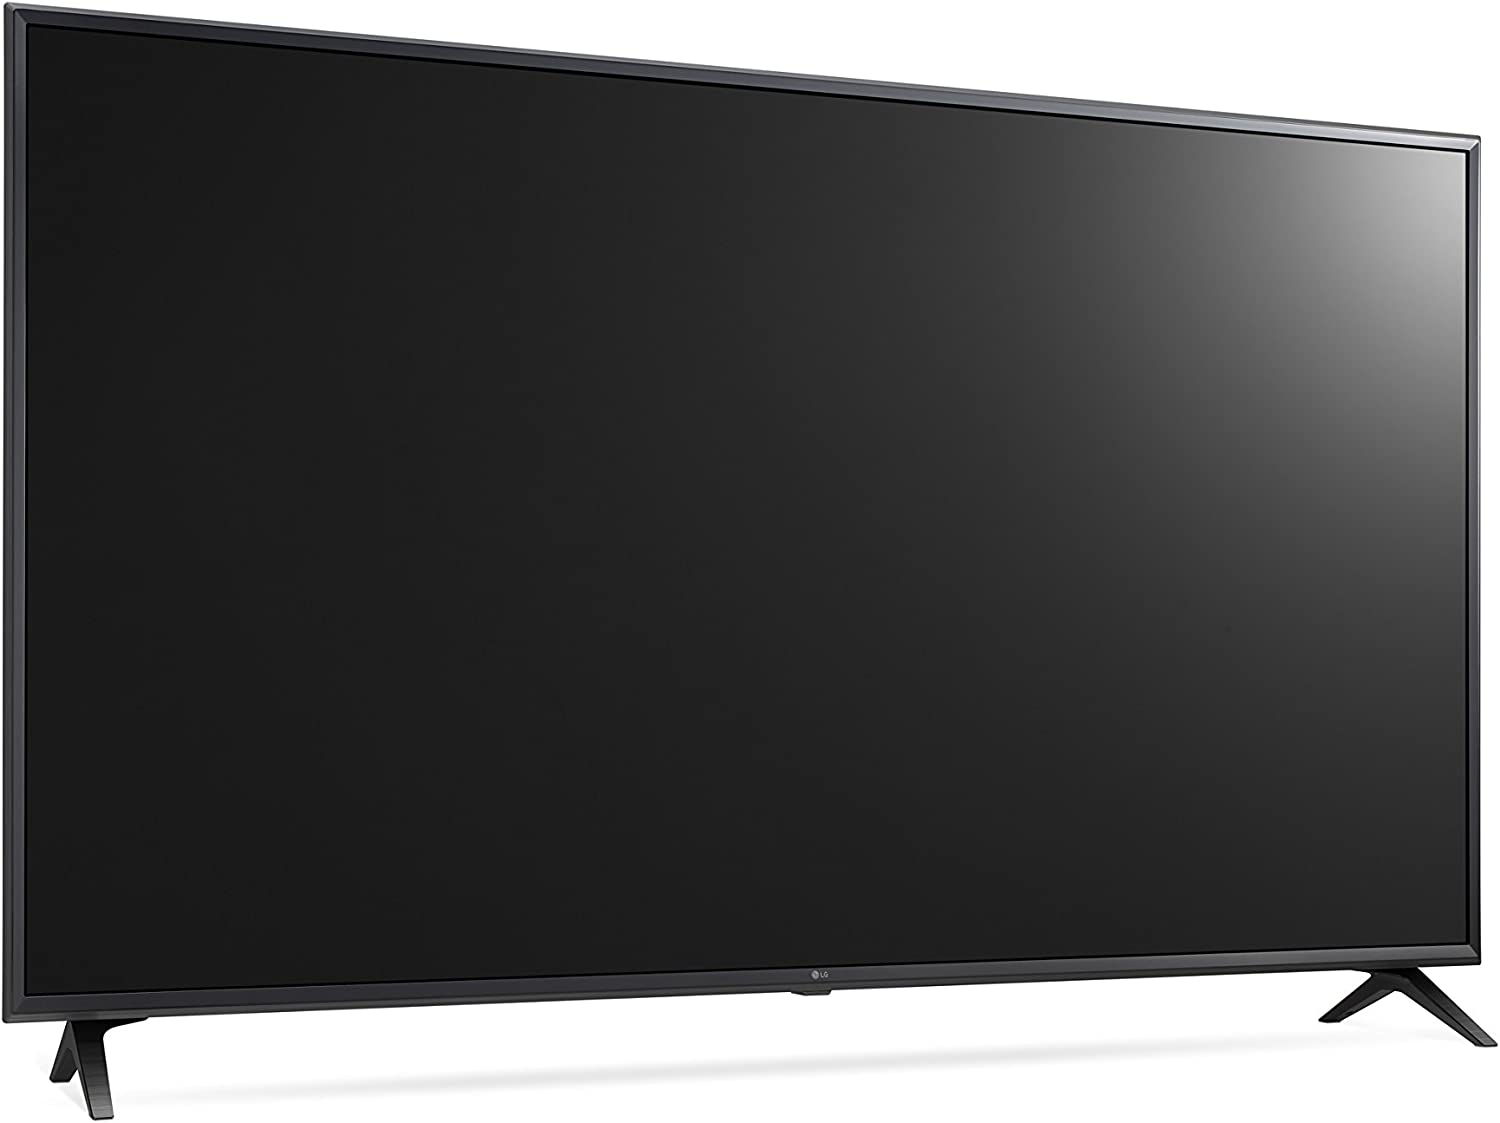 LG 55 UK 6300 LLB - 139 cm (55 Zoll) TV (4K Ultra HD, HDR 10, Smart TV, WLAN, Triple Tuner (DVB-T2), USB): Amazon.es: Electrónica